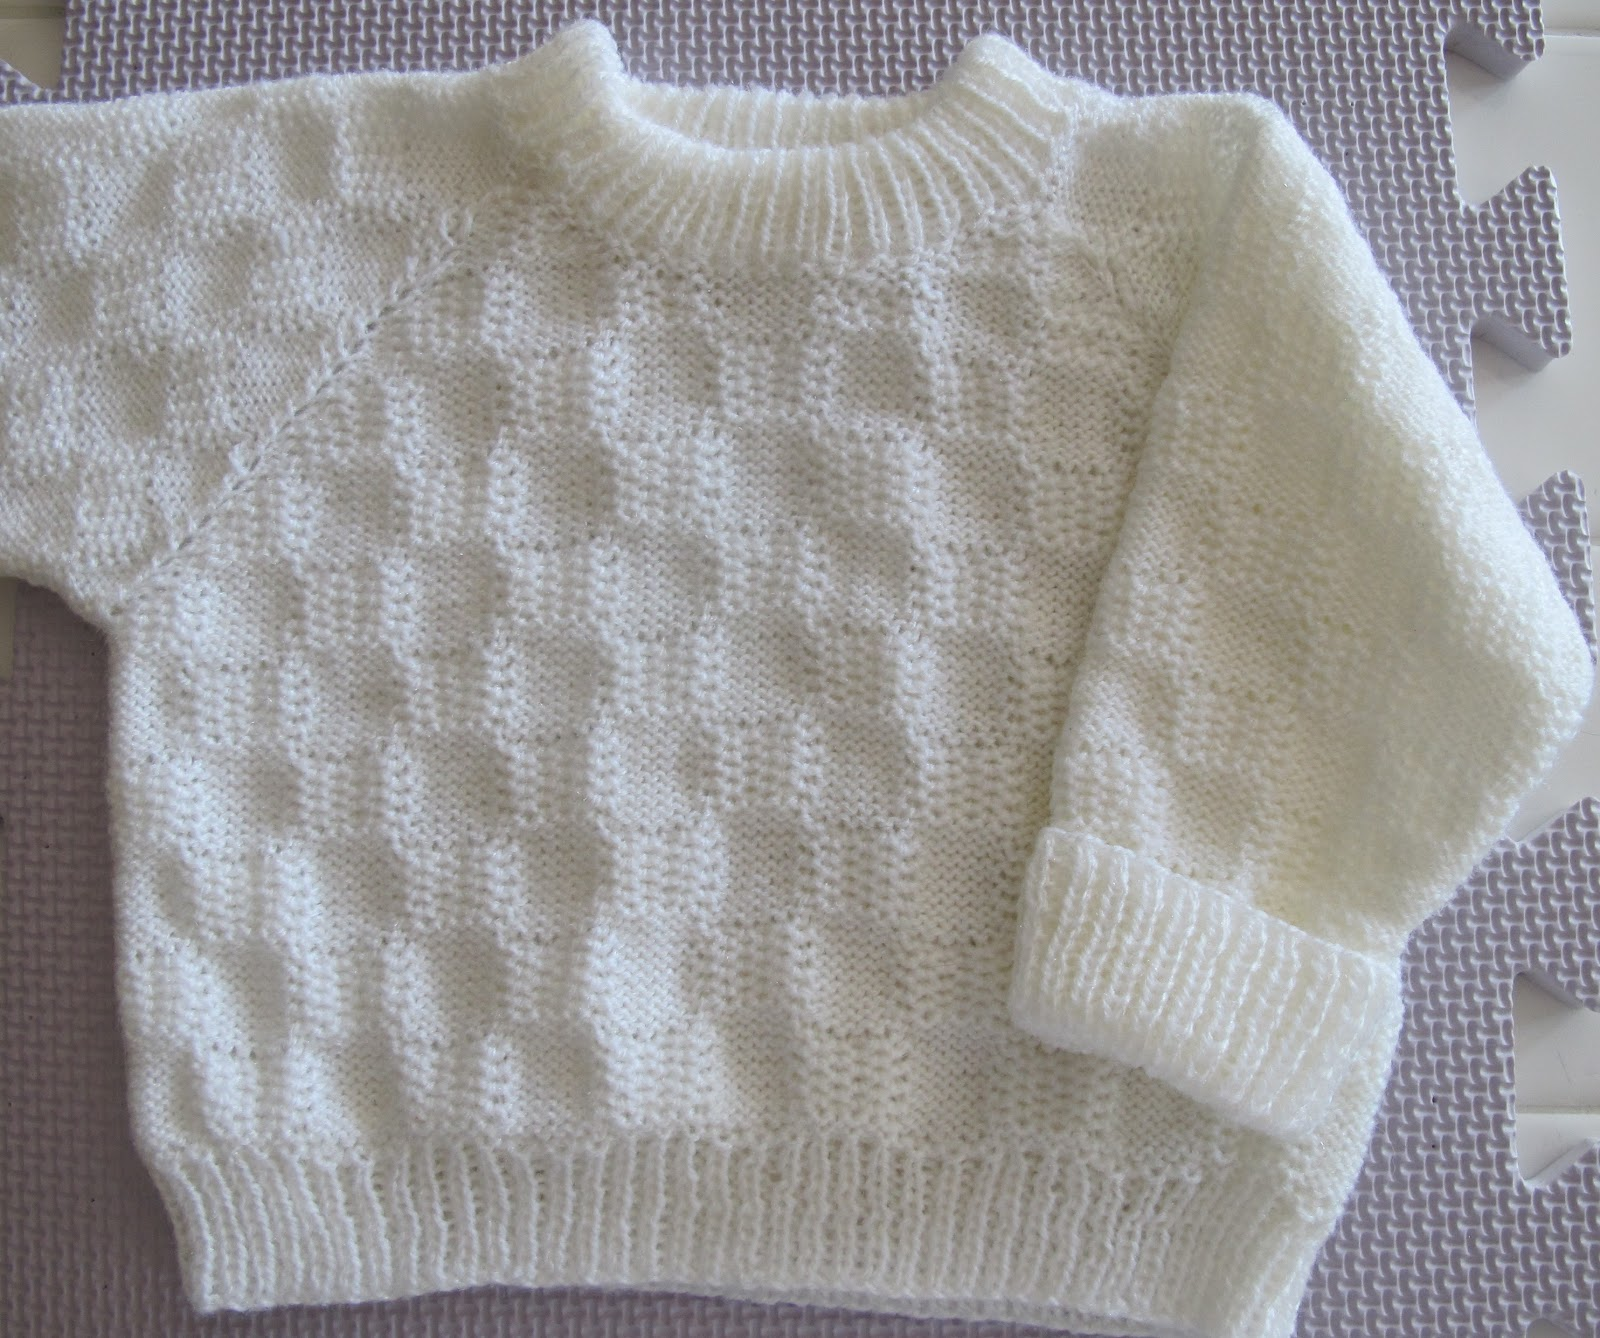 Knitting Pattern For Toddler Raglan Sweater : TOM MACHINE KNITTING GUY: Machine Knit Babys Raglan ...